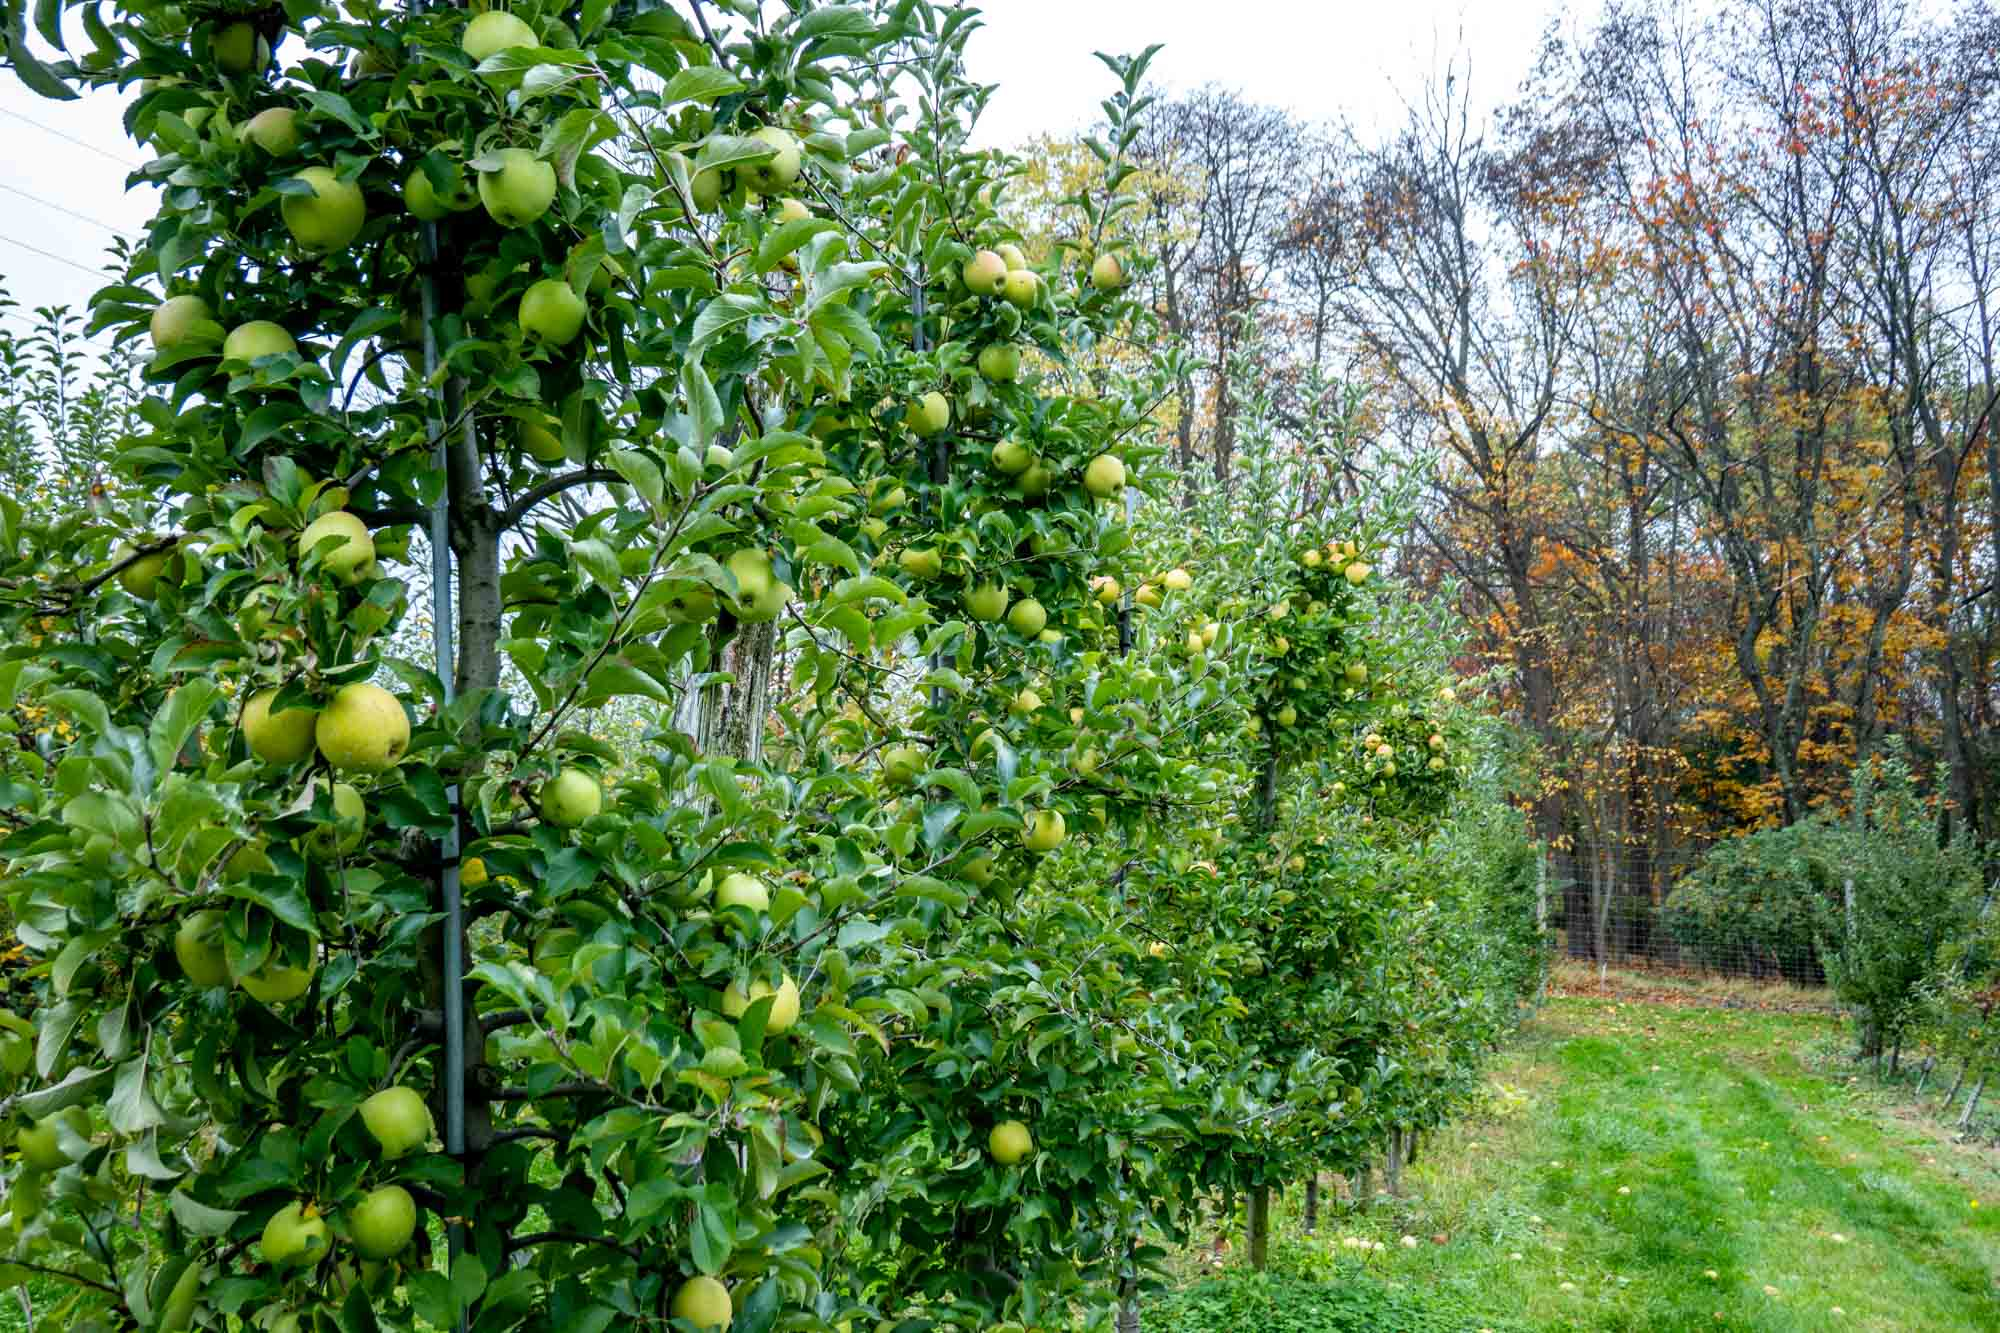 Green apples on rows of trees